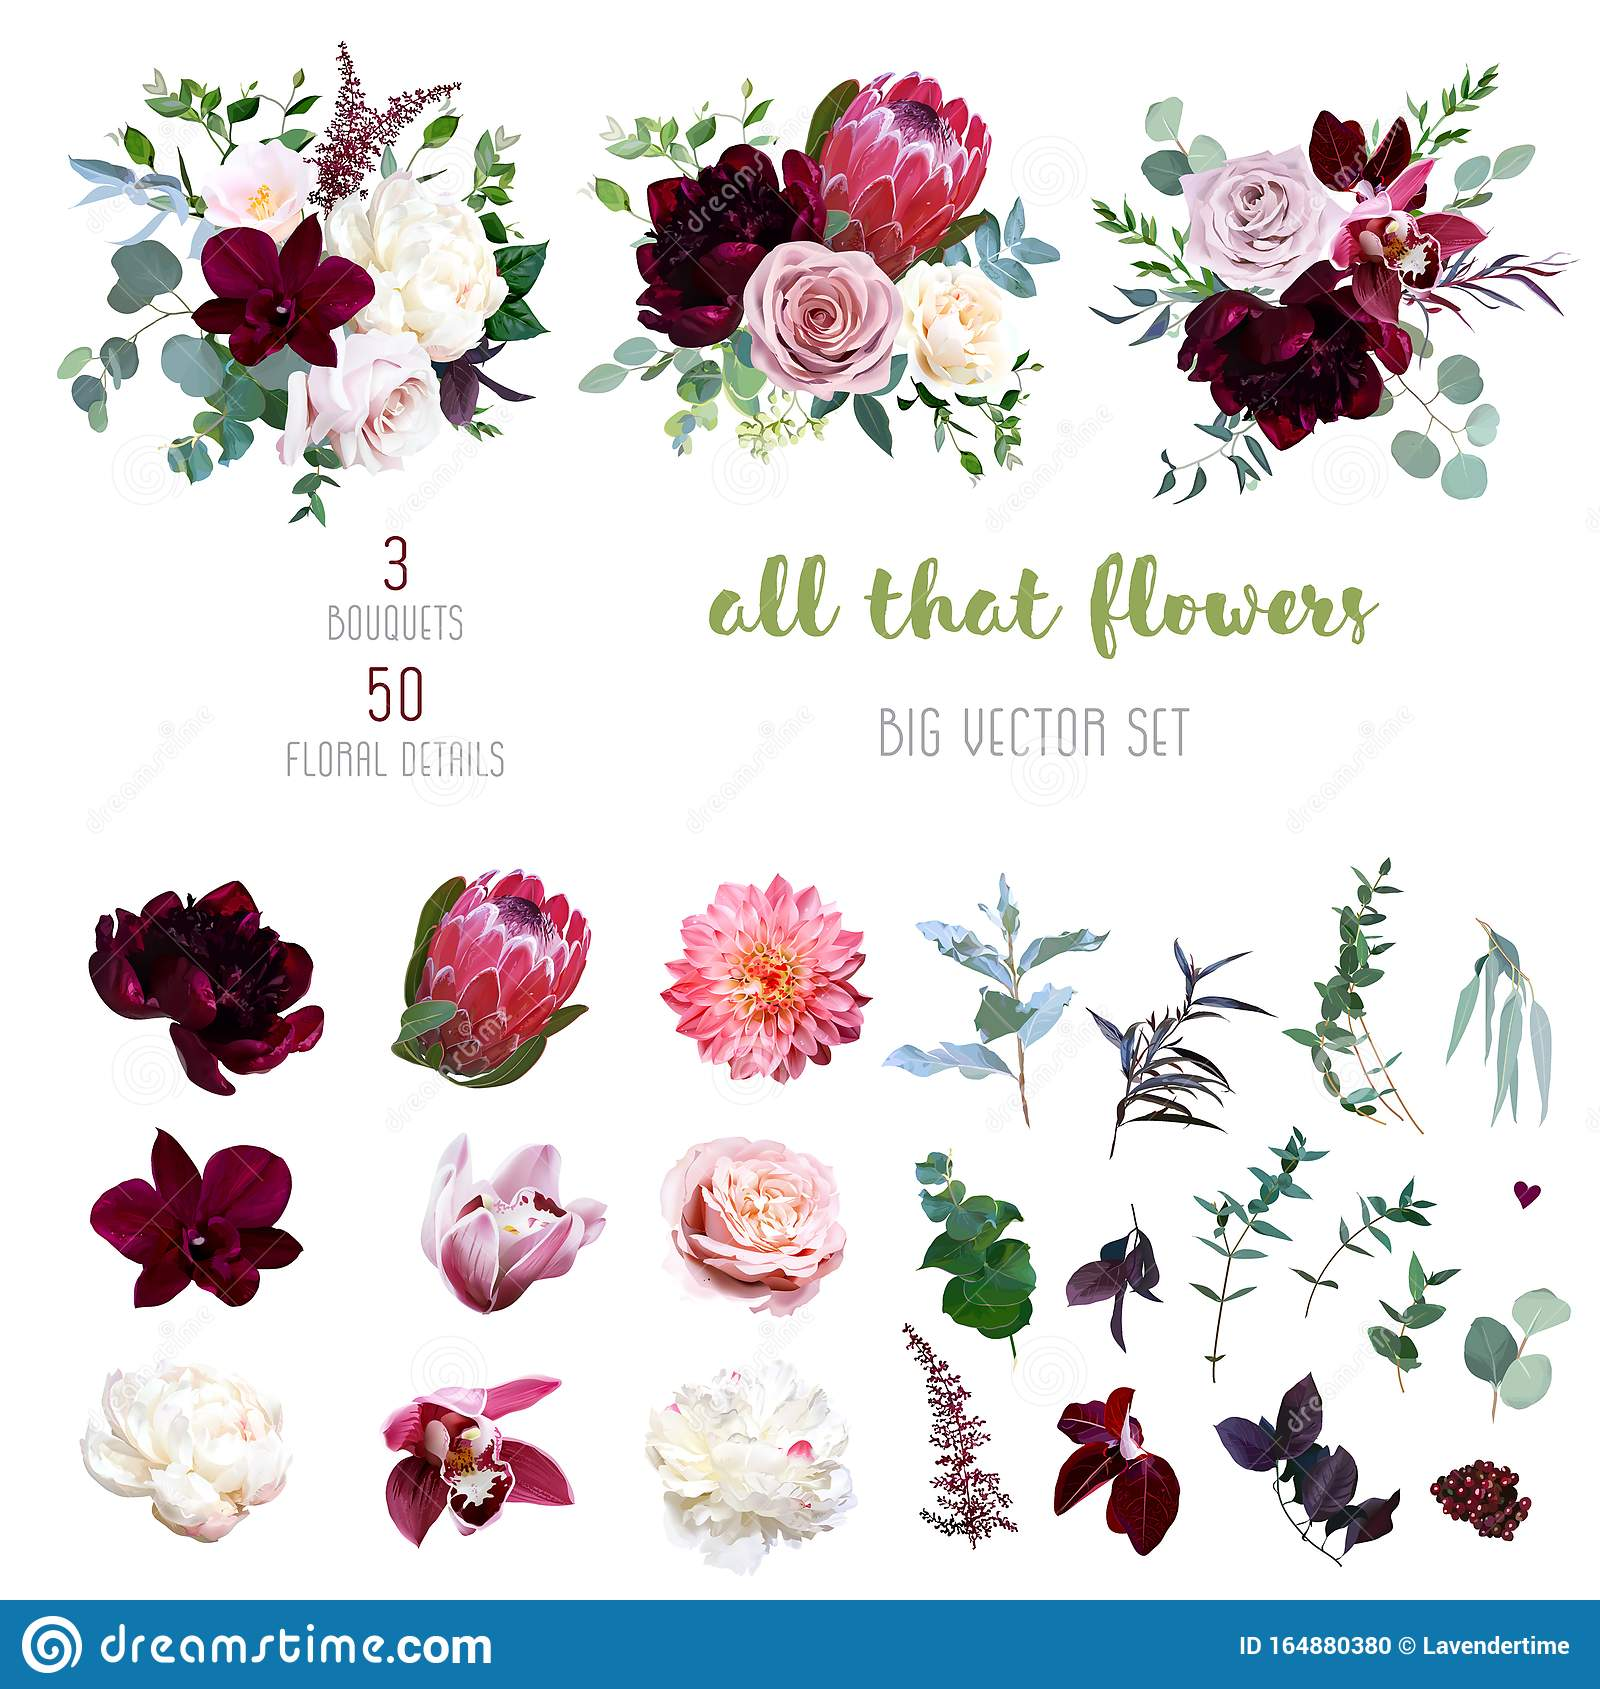 Dusty Pink And Creamy Rose Coral Dahlia Burgundy And White Peony Flowers Stock Vector Illustration Of Elegant Blue 164880380